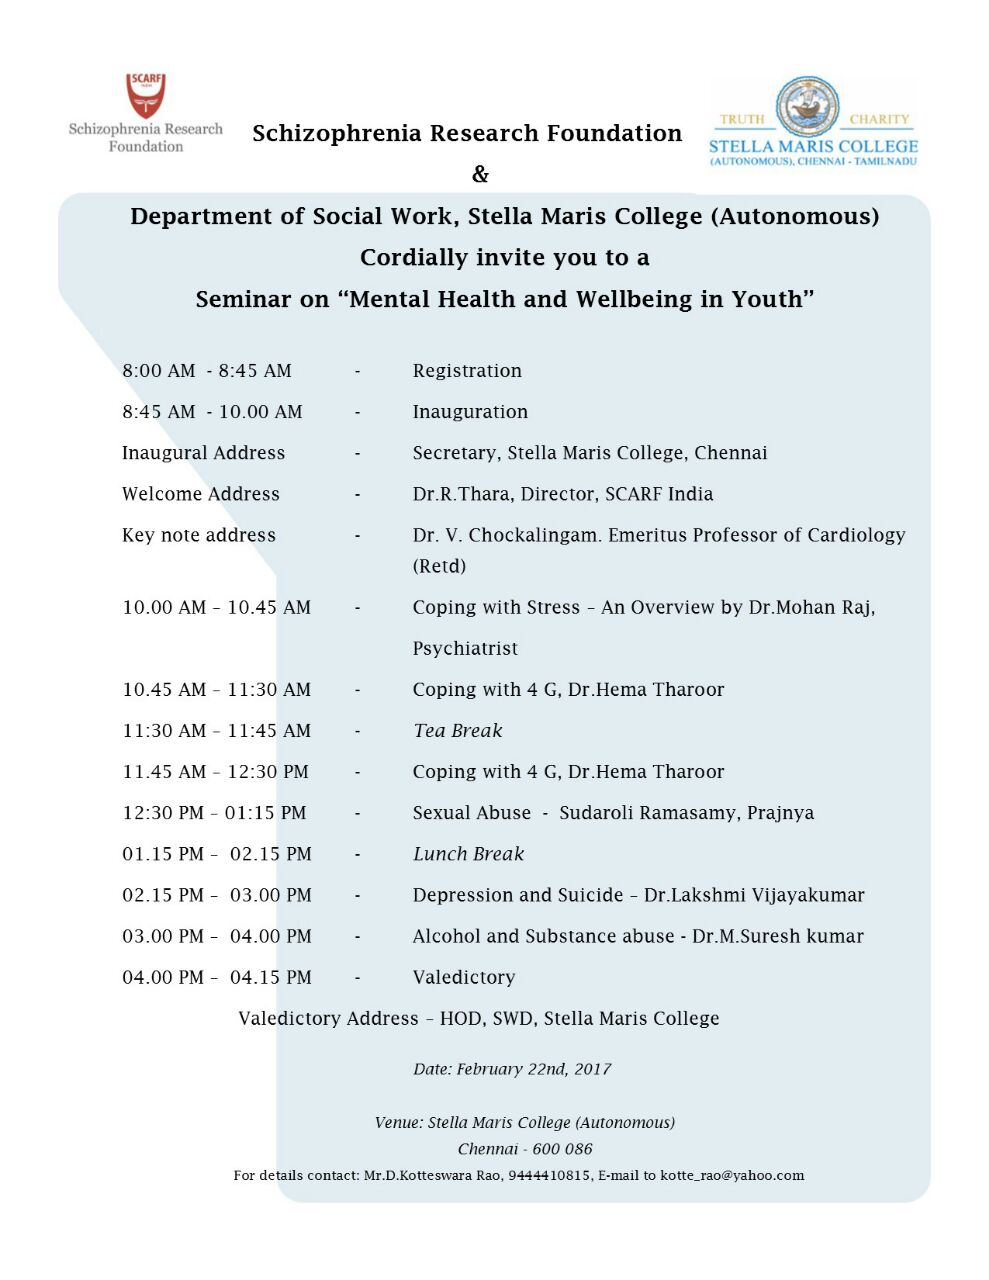 Seminar on Mental Health and Wellbeing in Youth.